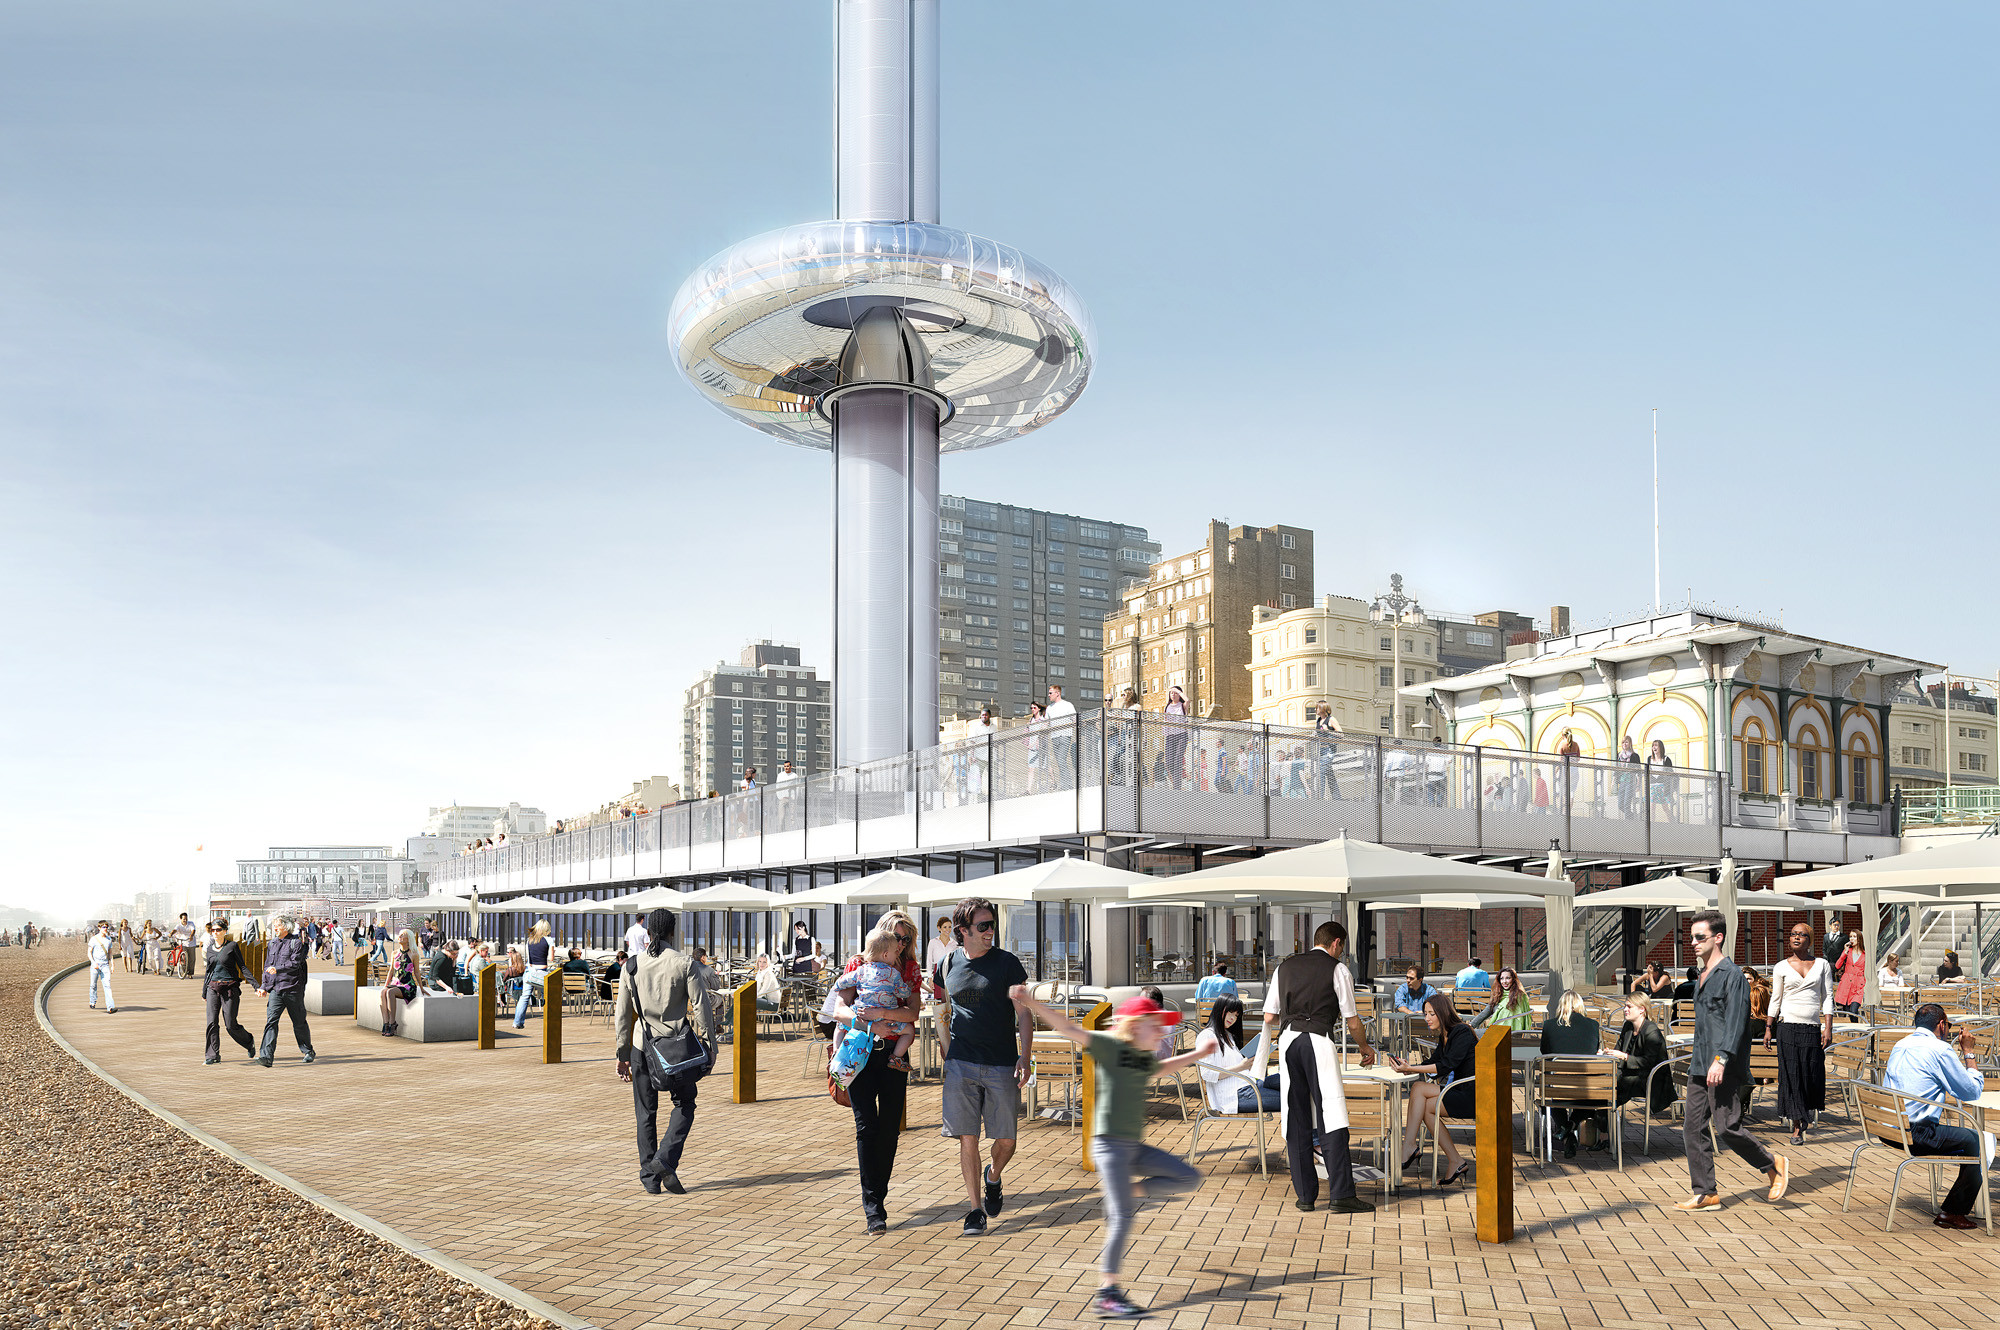 Beachfront Observation Tower Confirmed for the British City of Brighton, Visualisation. Image Courtesy of Marks Barfield Architects / i360 Brighton